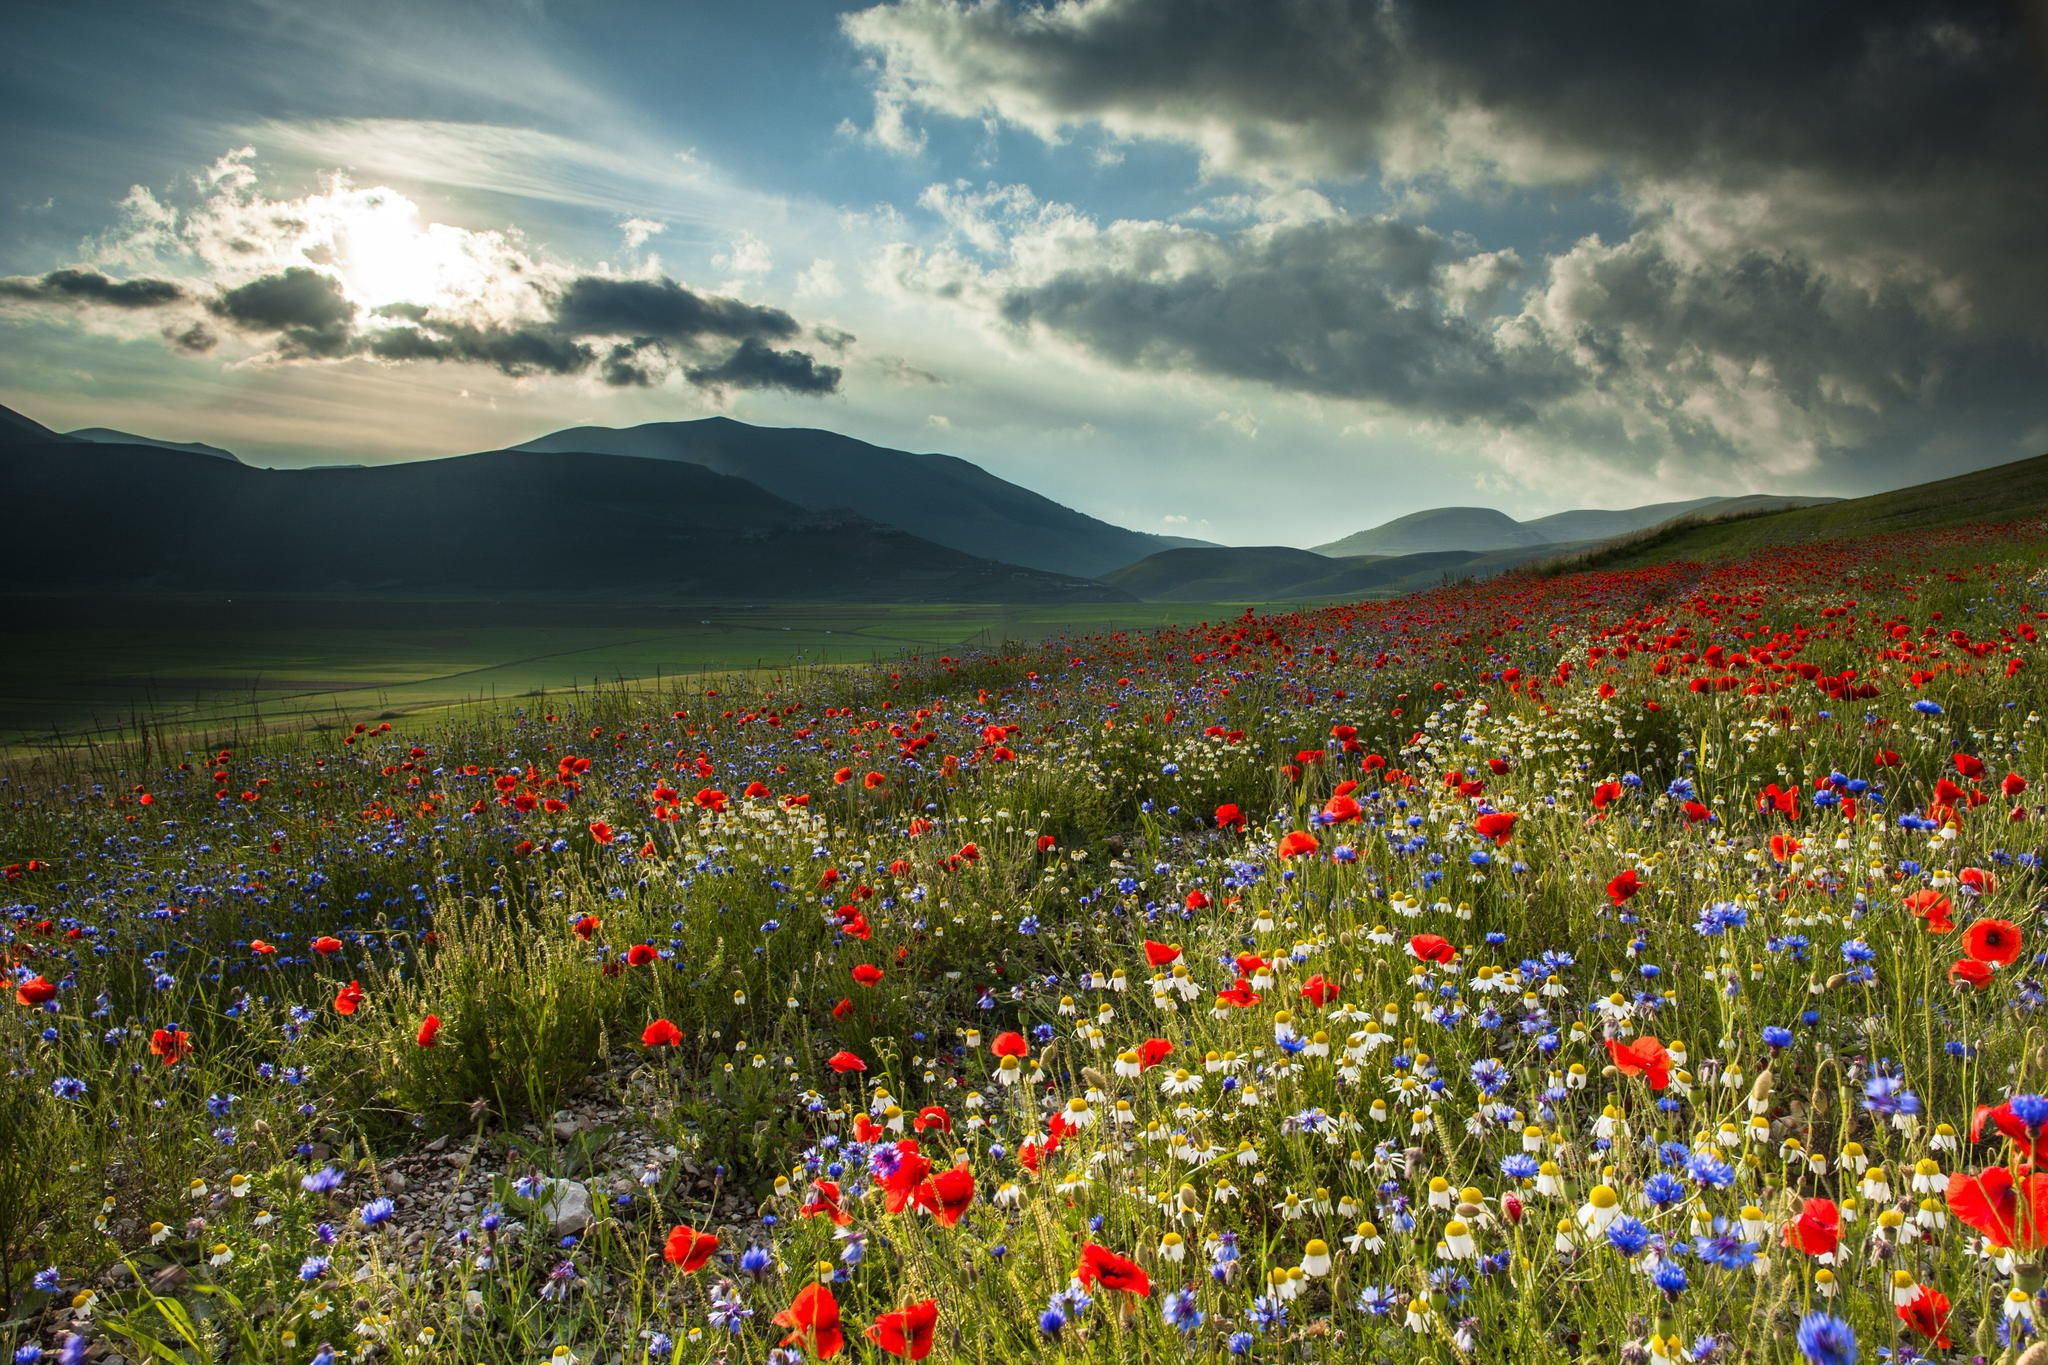 Wildflowers in Castelluccio, Umbria, in the Apennine Mountains of central Italy ~ Massimo Tommi